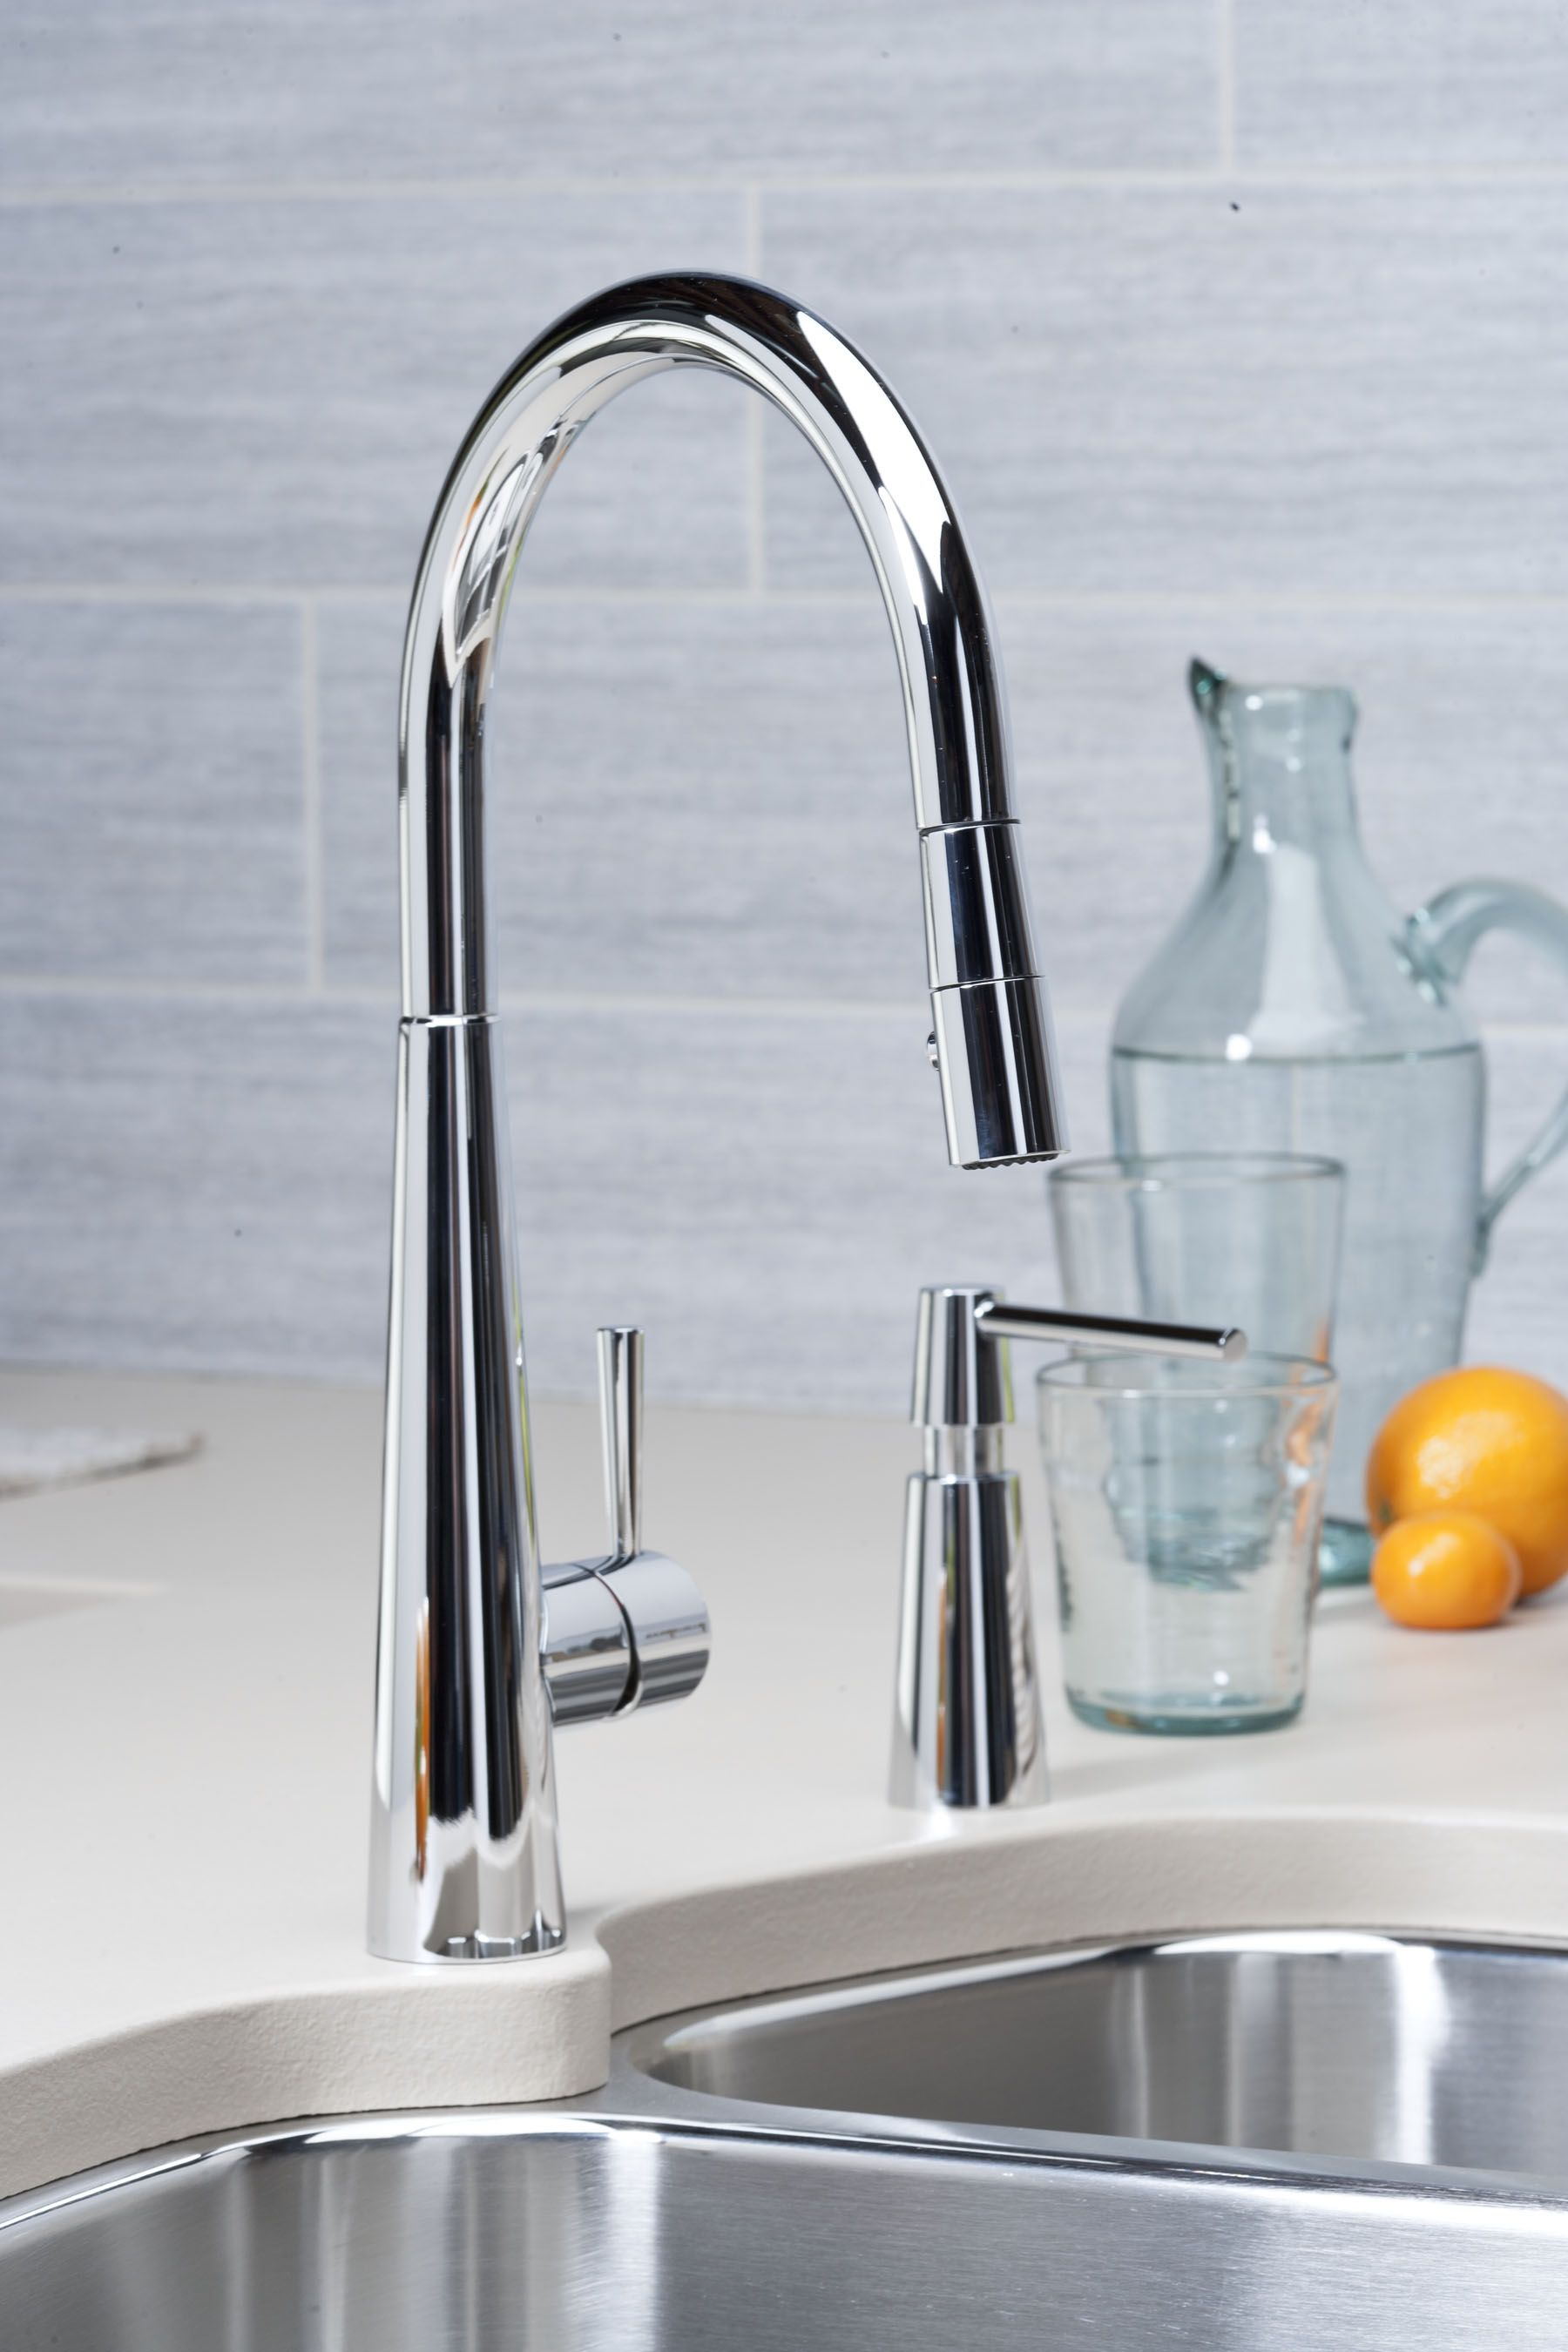 Elkay Harmony Single Hole Kitchen Faucet with Pull-down ...